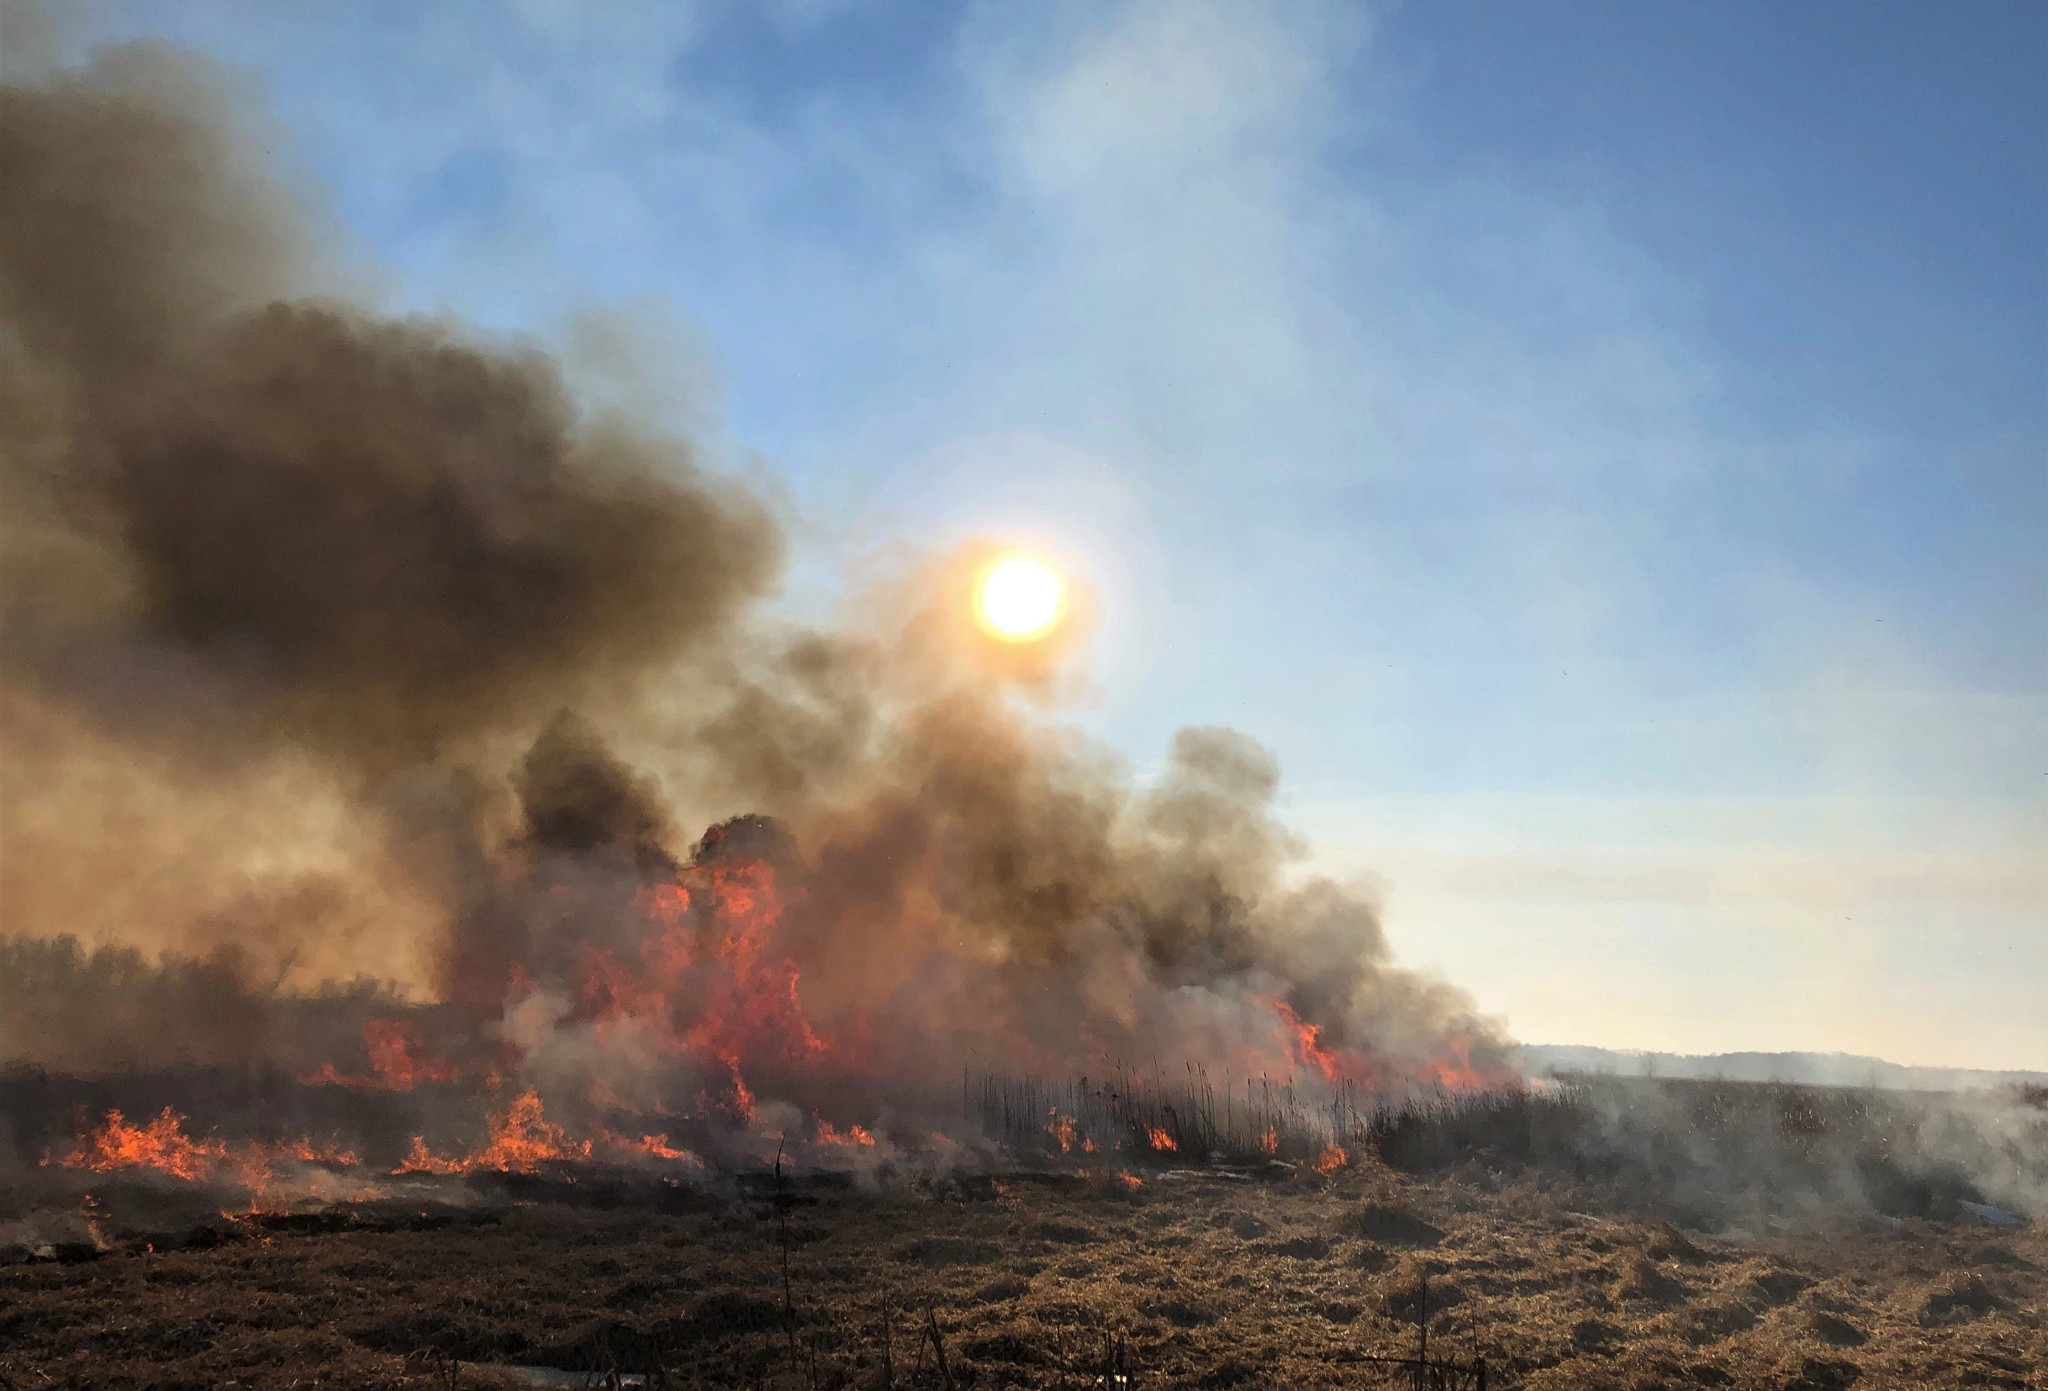 The sun sets behind smoke during a prescribed burn.